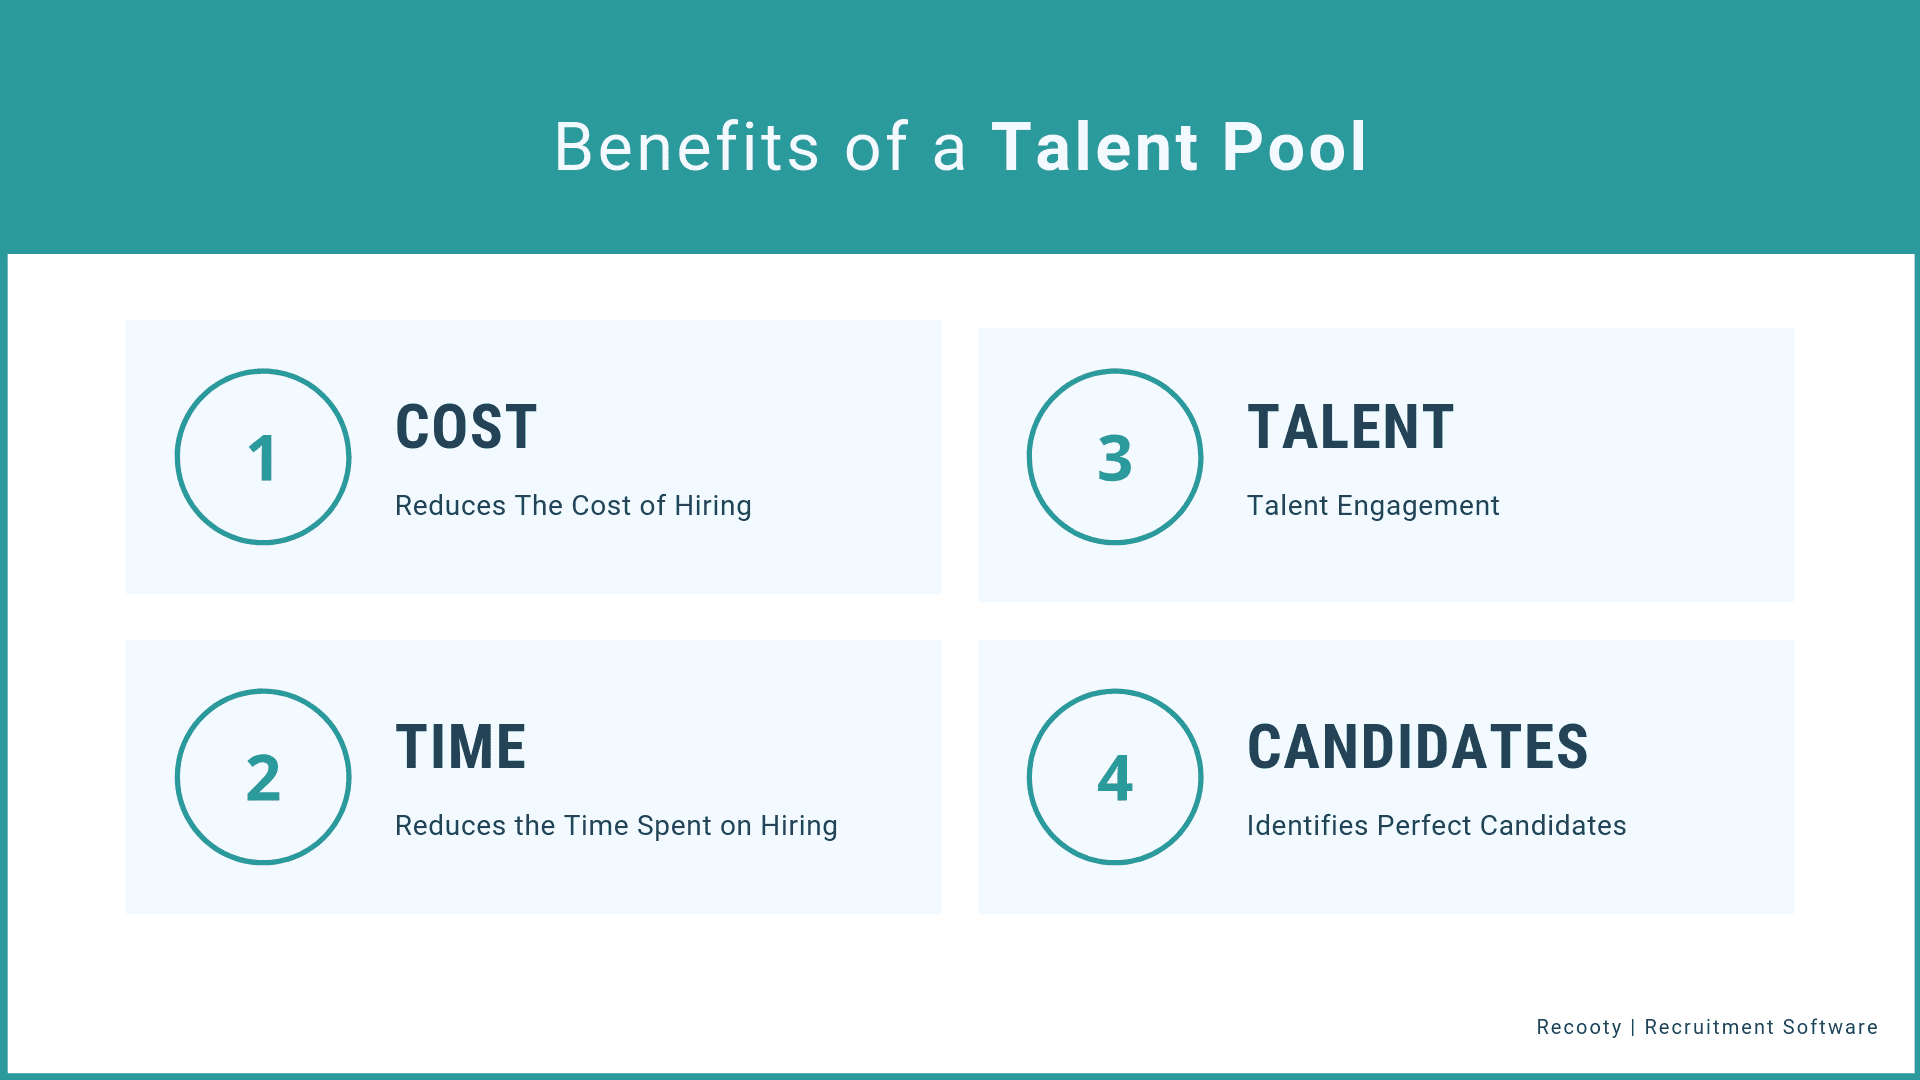 Benefits of a Talent Pool